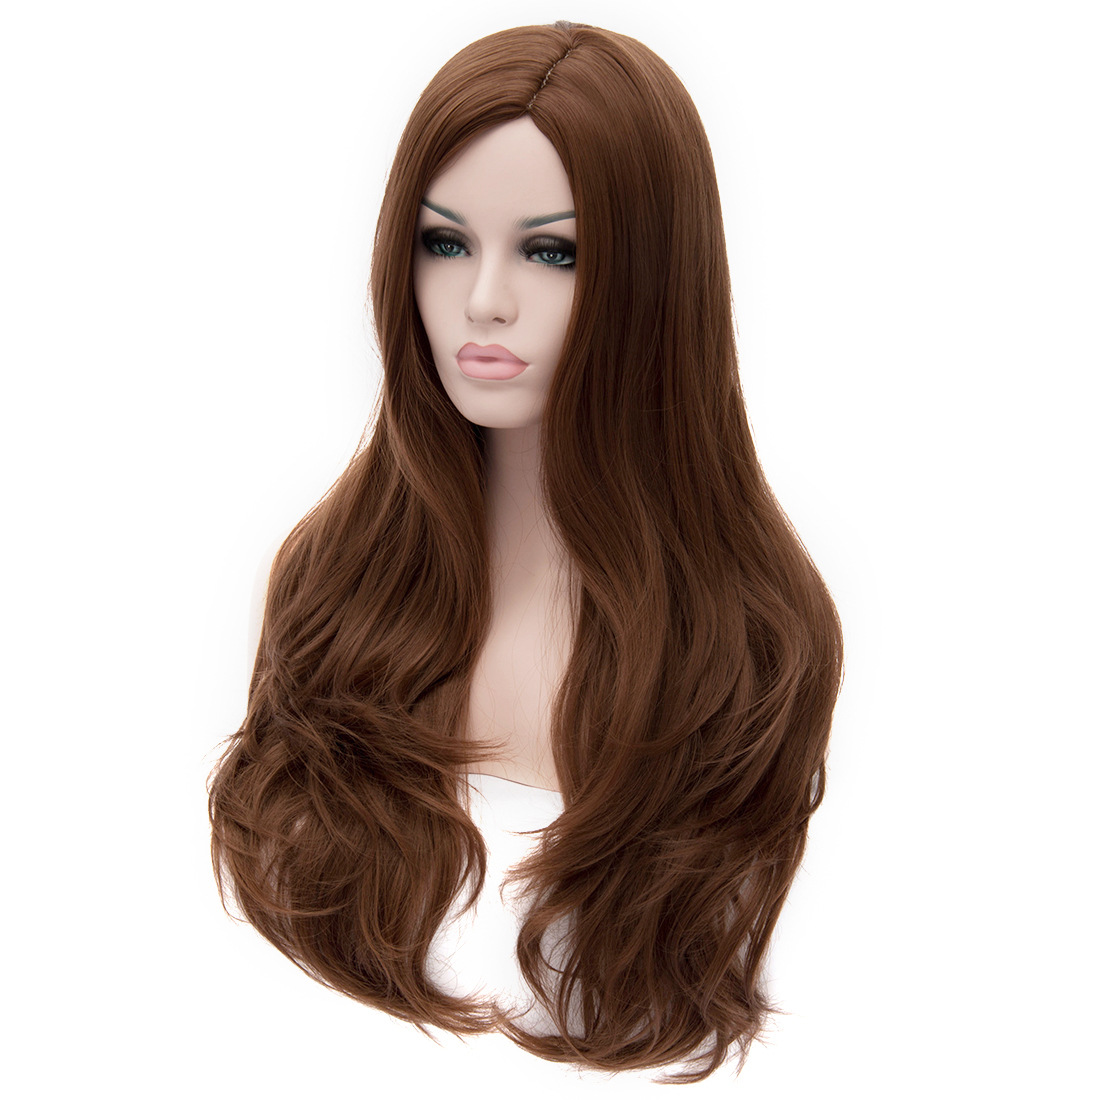 High Quality Europe and America Womens Synthetic Full Hair Wig Hot Curly Cosplay Party Long Brown Peruca Peluca Perruque Femme<br><br>Aliexpress